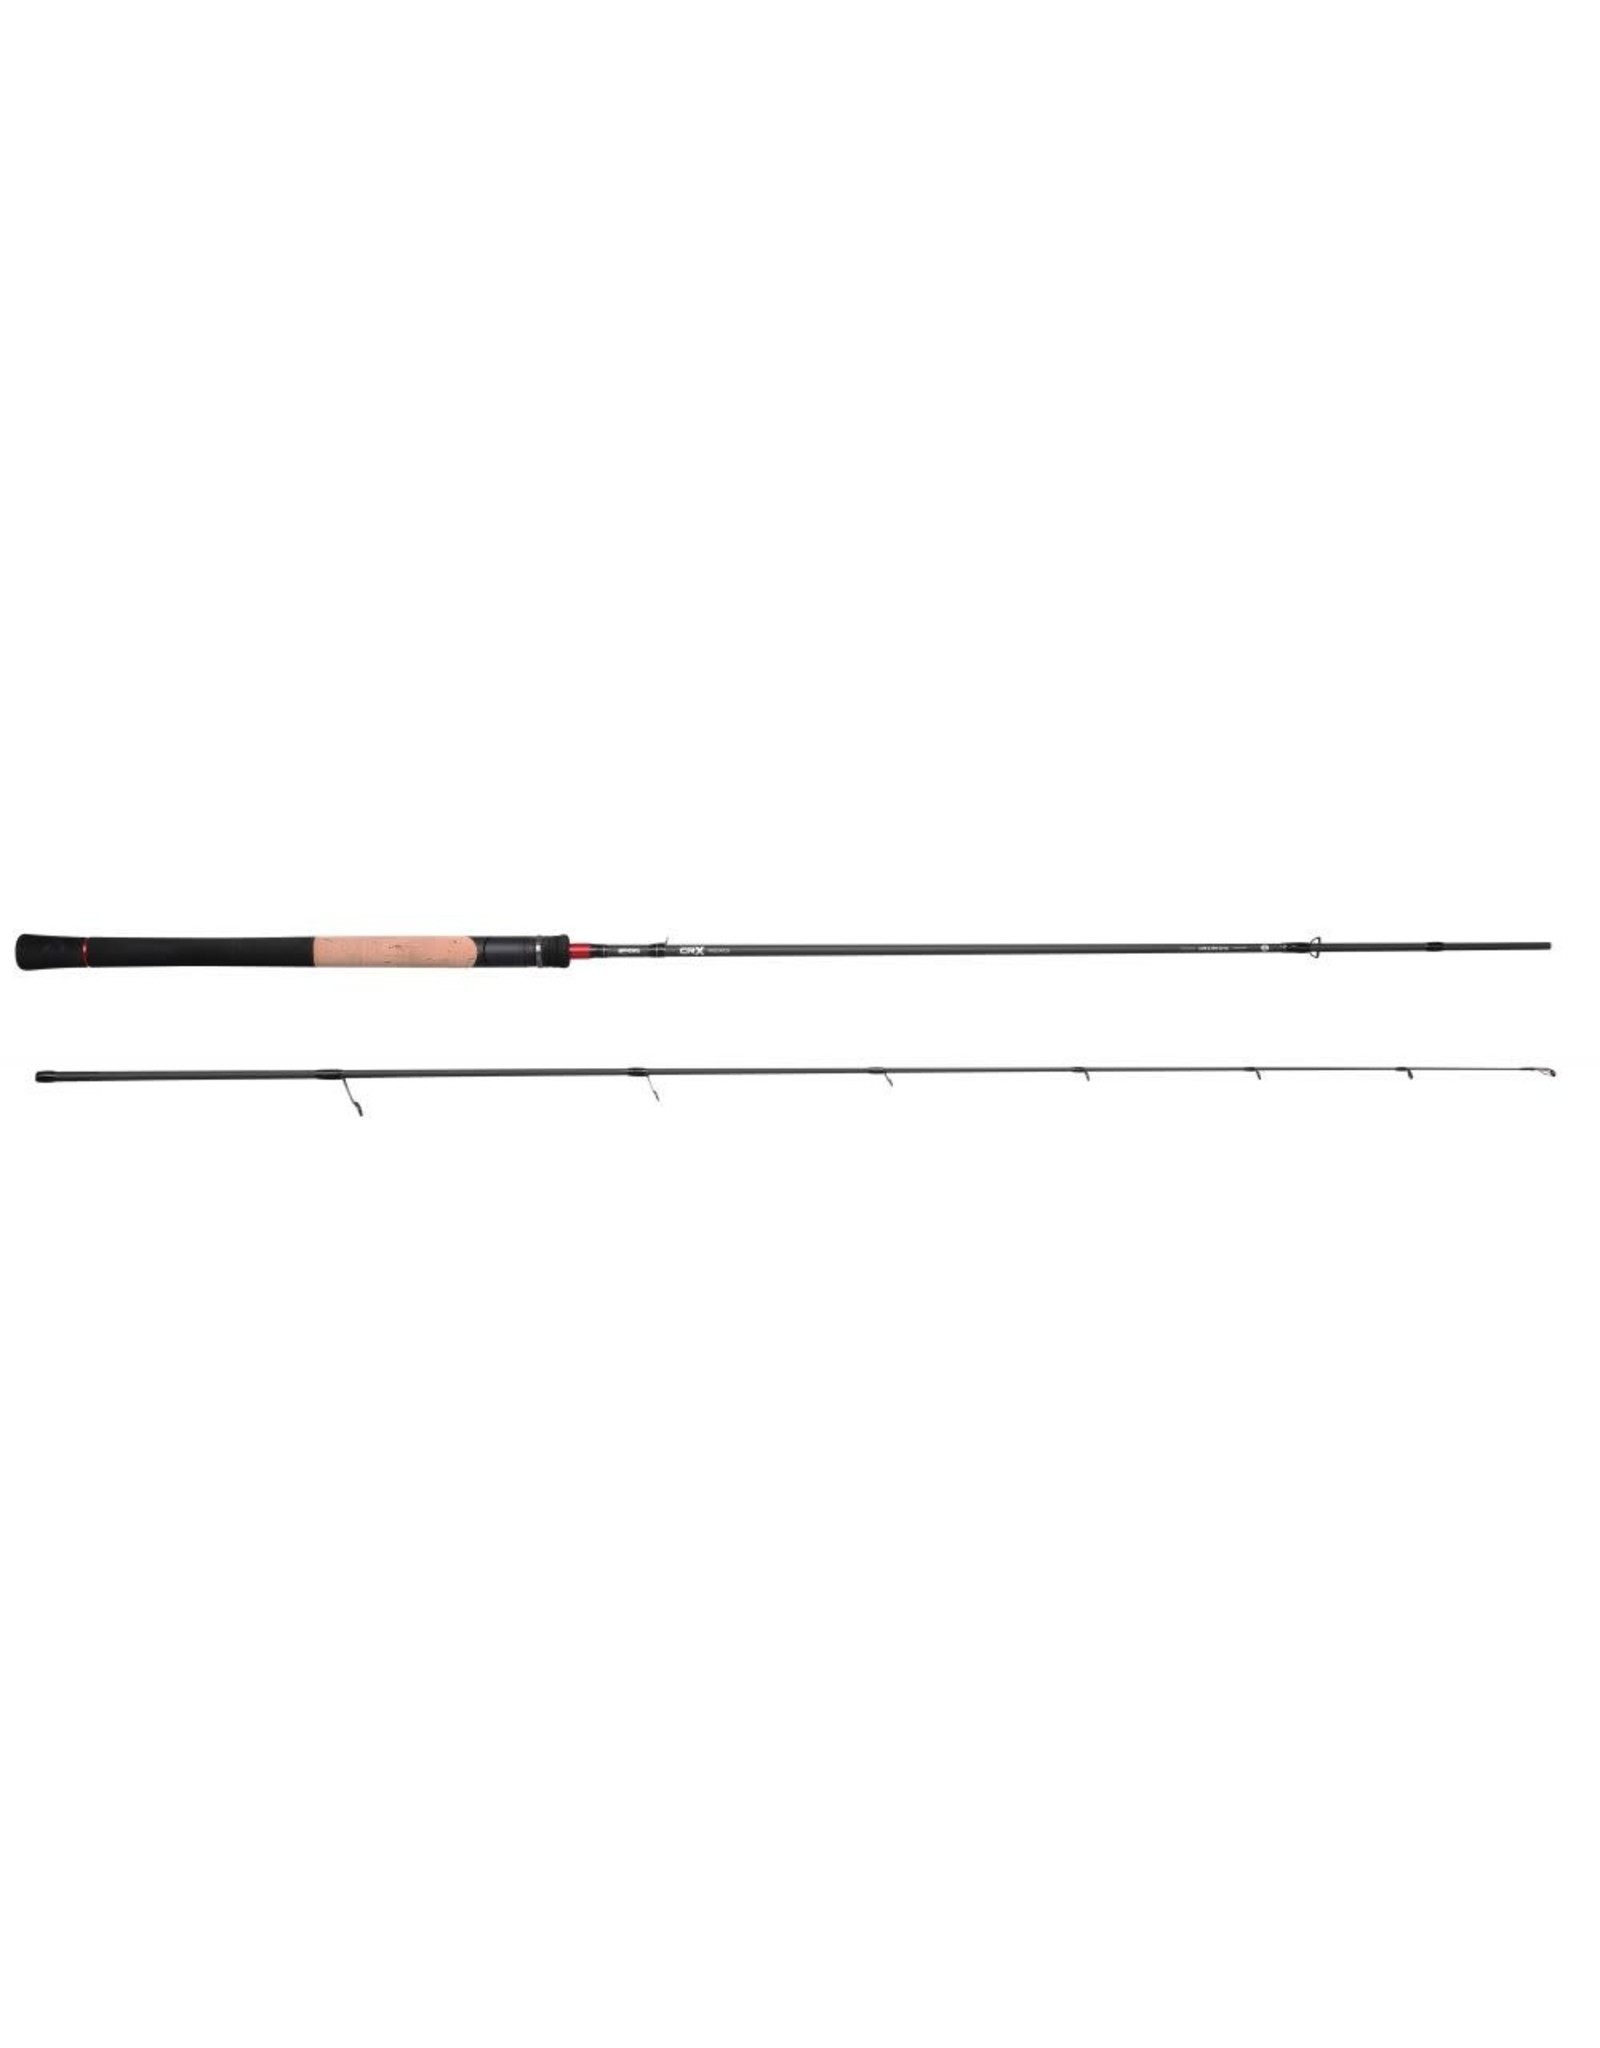 SPRO CRX LURE & SPIN S240ML 15-45G